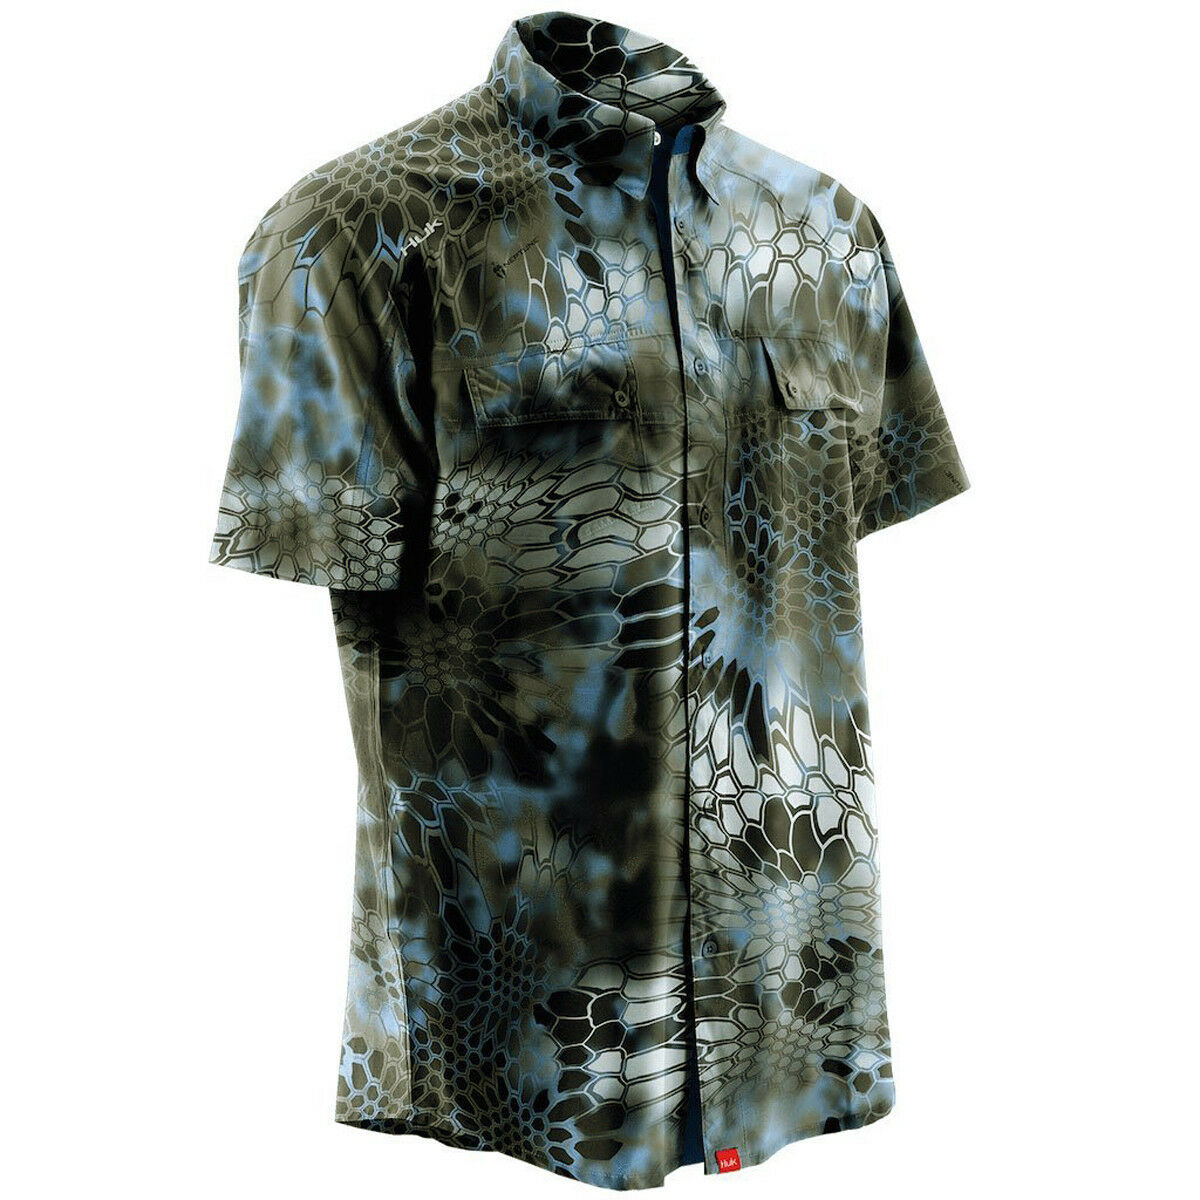 Huk Next Level Kryptek Antimicrobial Cooling Button-Down Shirt - Neptune